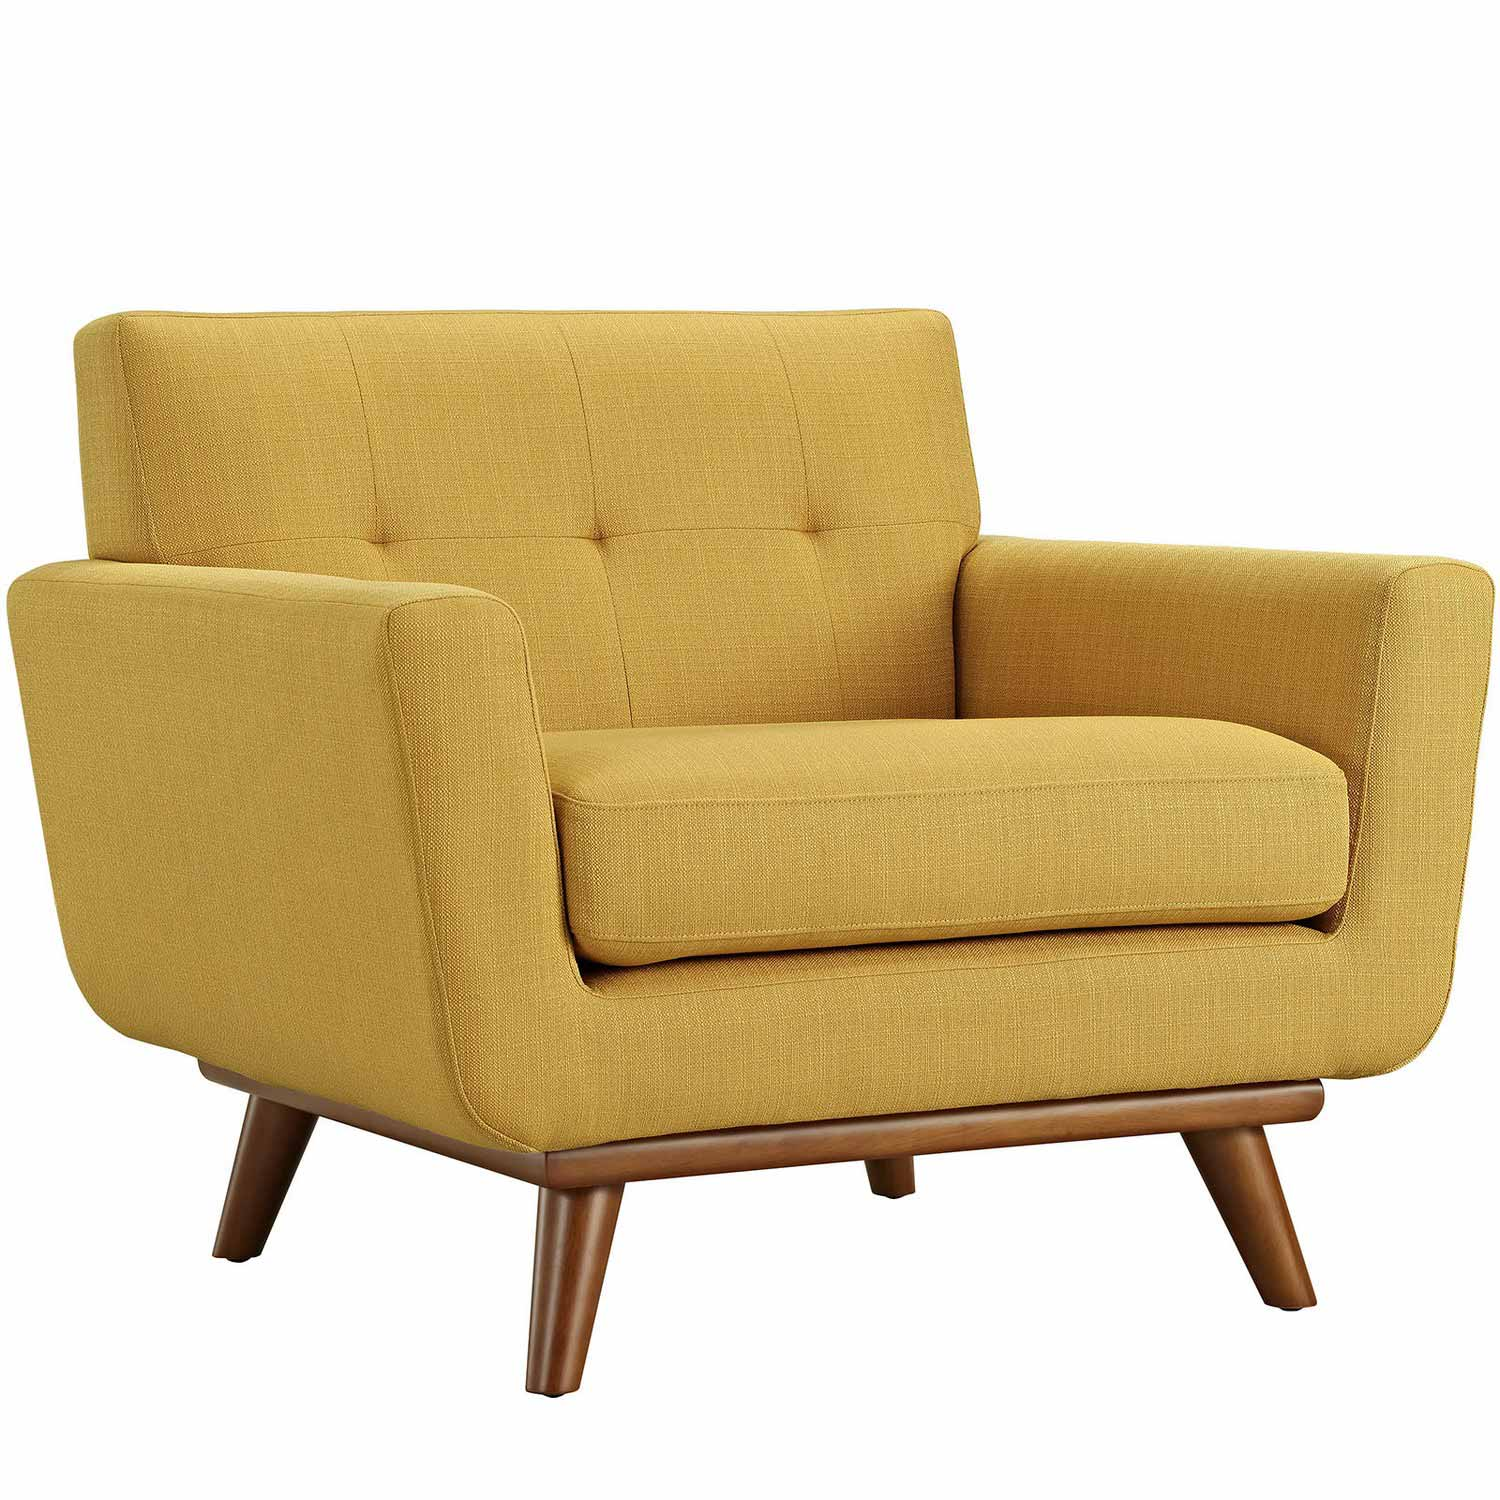 Modway Engage Upholstered Armchair - Citrus